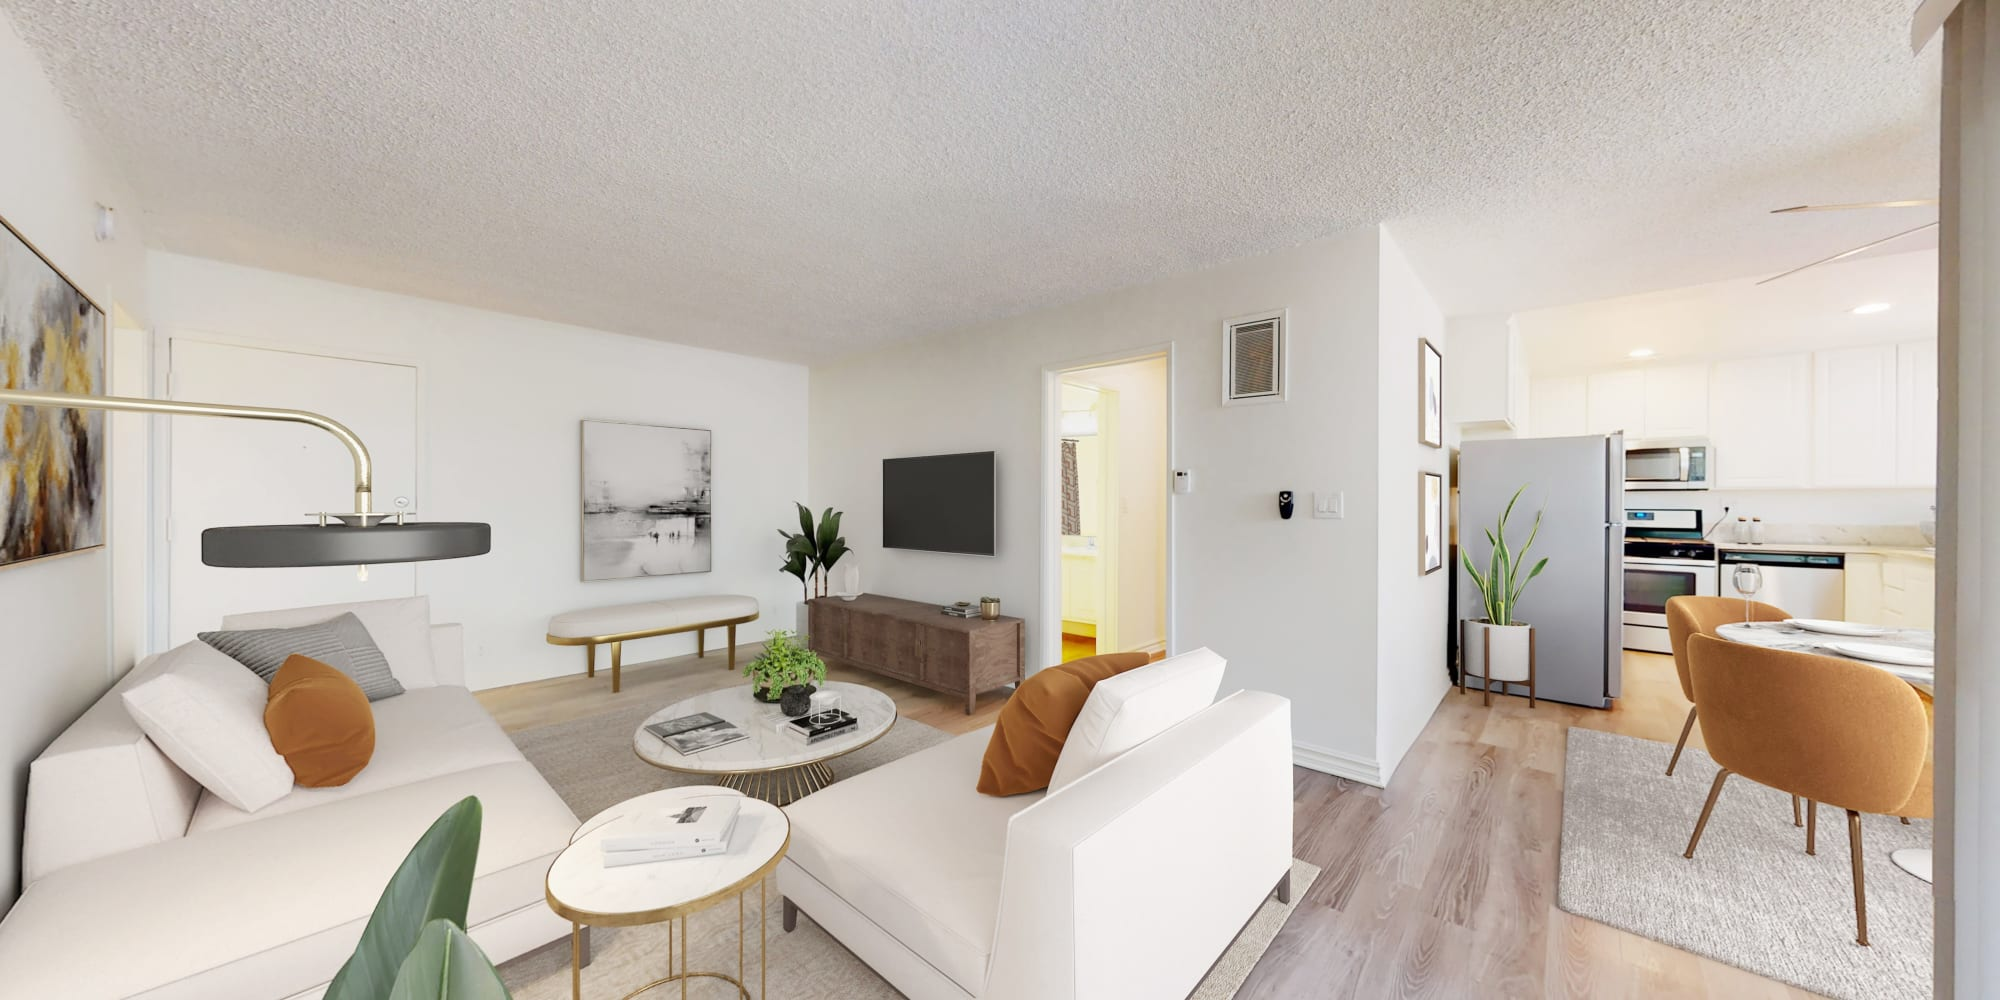 Living room and dining room in a two-bedroom apartment home at Sunset Barrington Gardens in Los Angeles, California